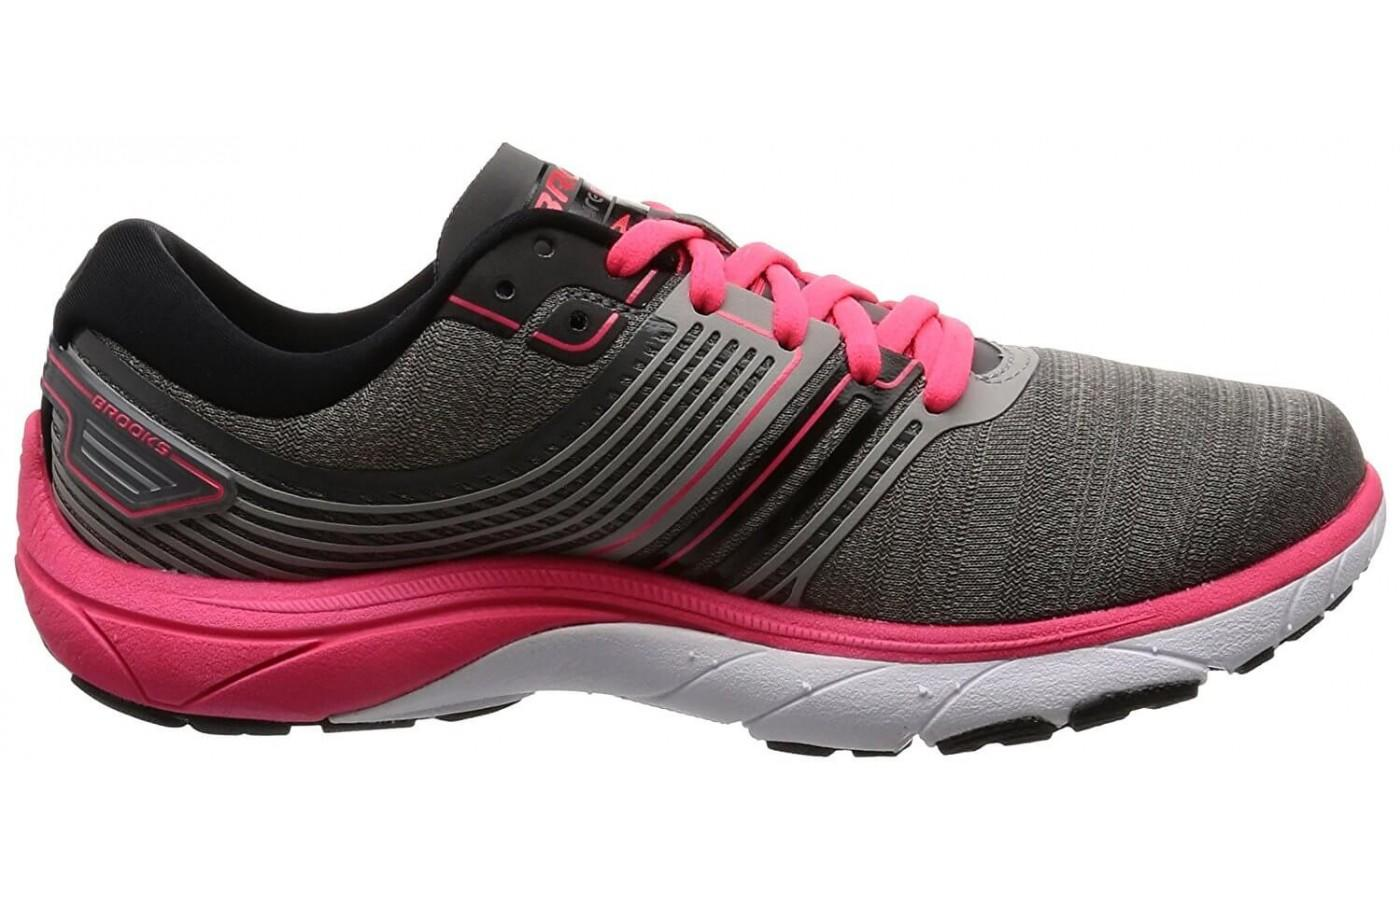 Pink and grey version of the Brooks PureCadence 6